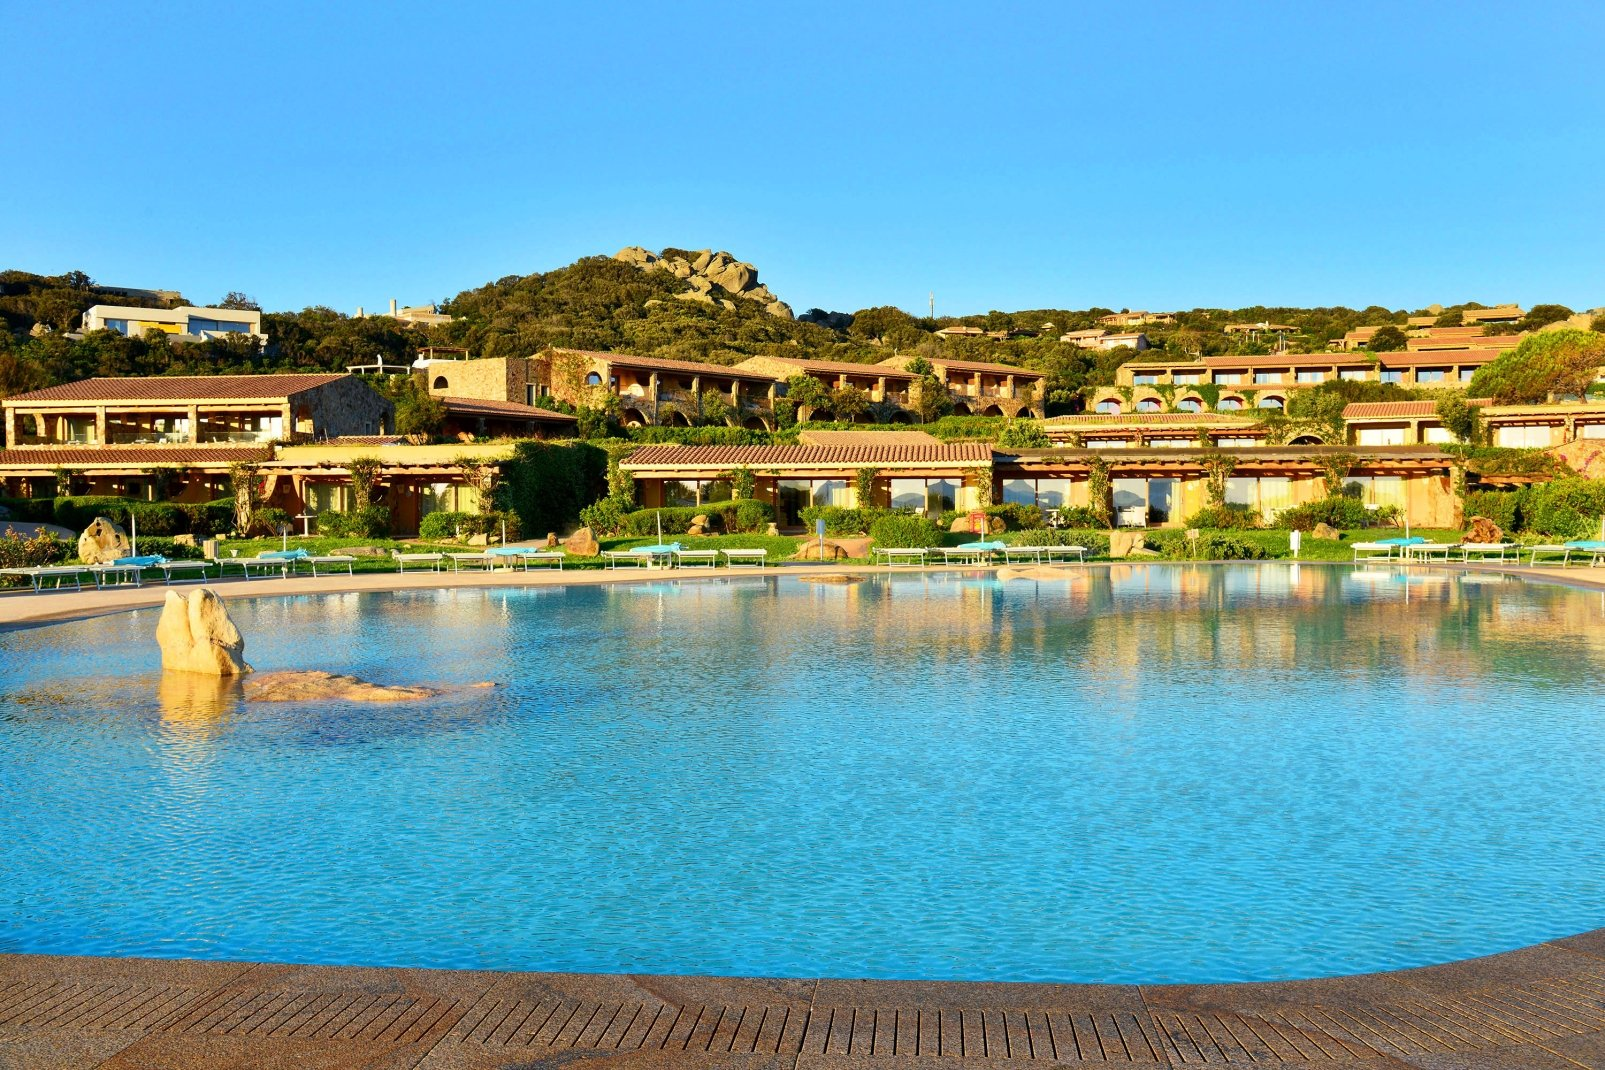 Resort Valle dell'Erica Thalasso & Spa - 5 étoiles - Santa Teresa Gallura - 1